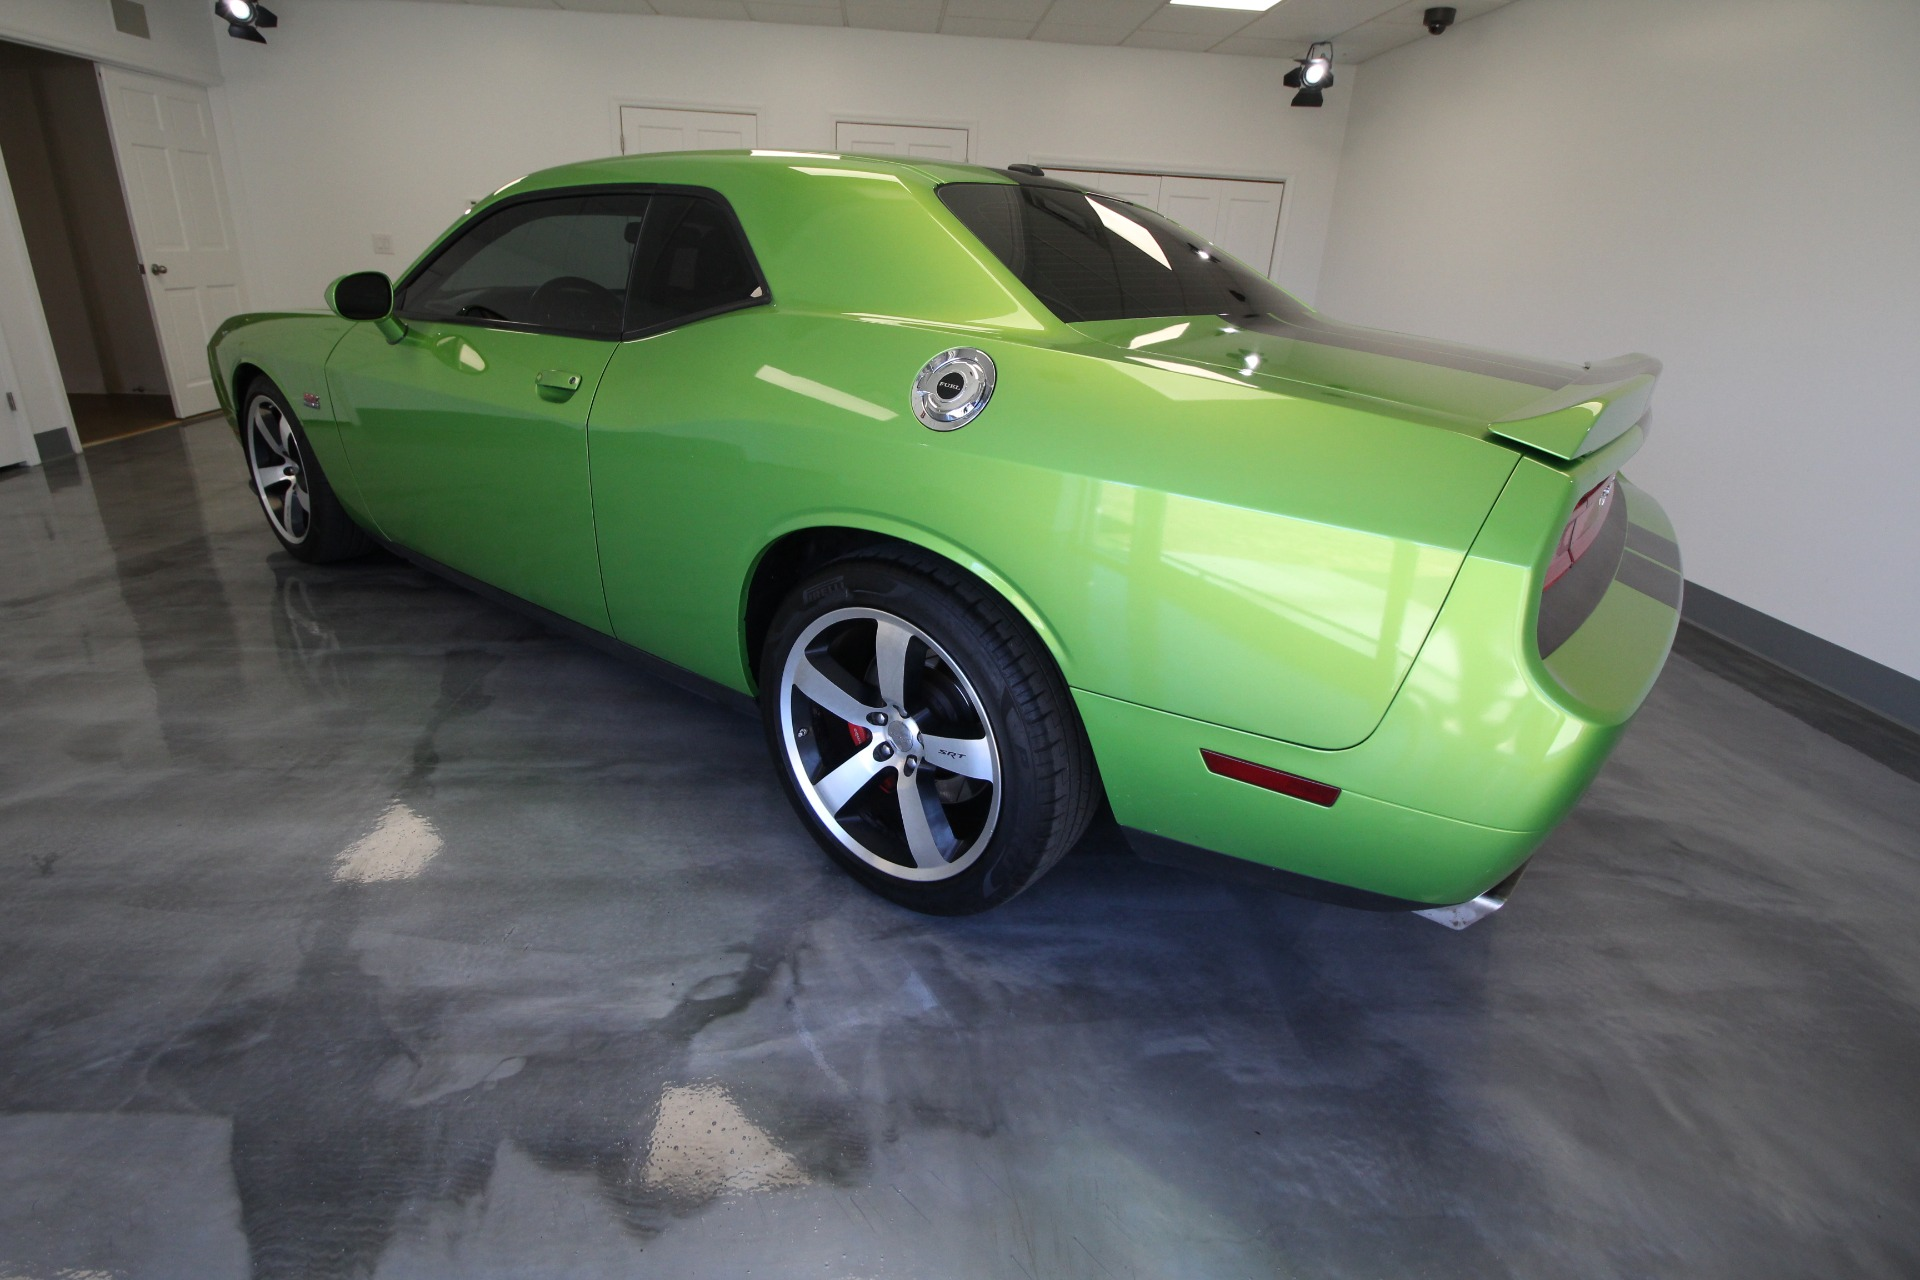 Used 2011 Dodge Challenger SRT8 RARE 6 SPEED MANUAL RARE COLOR GREEN W/ ENVY | Albany, NY